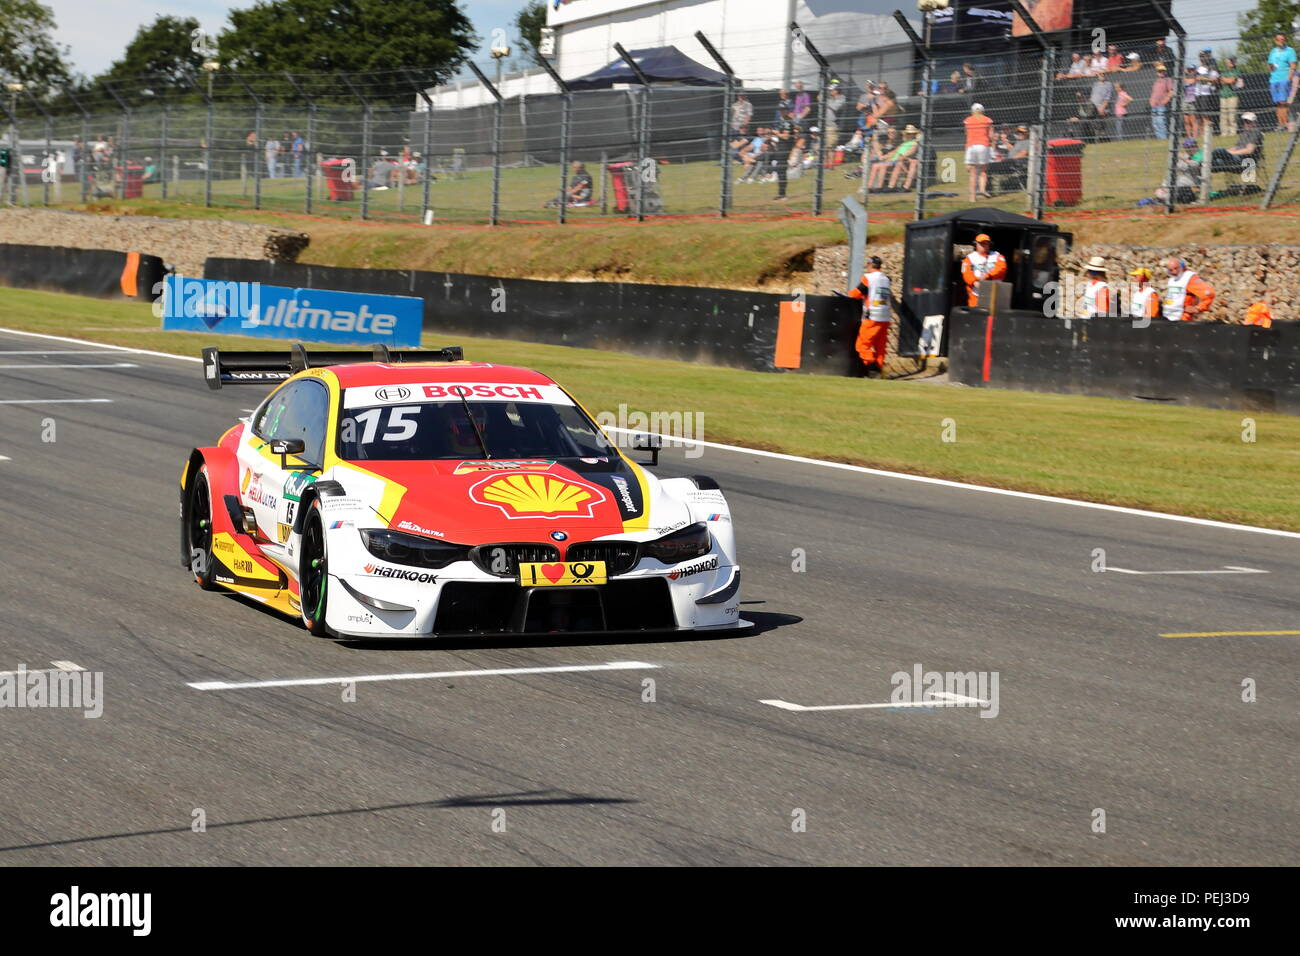 Augusto Farfus in his BMW at the DTM Race 2018 at Brands Hatch Circuit, UK - Stock Image